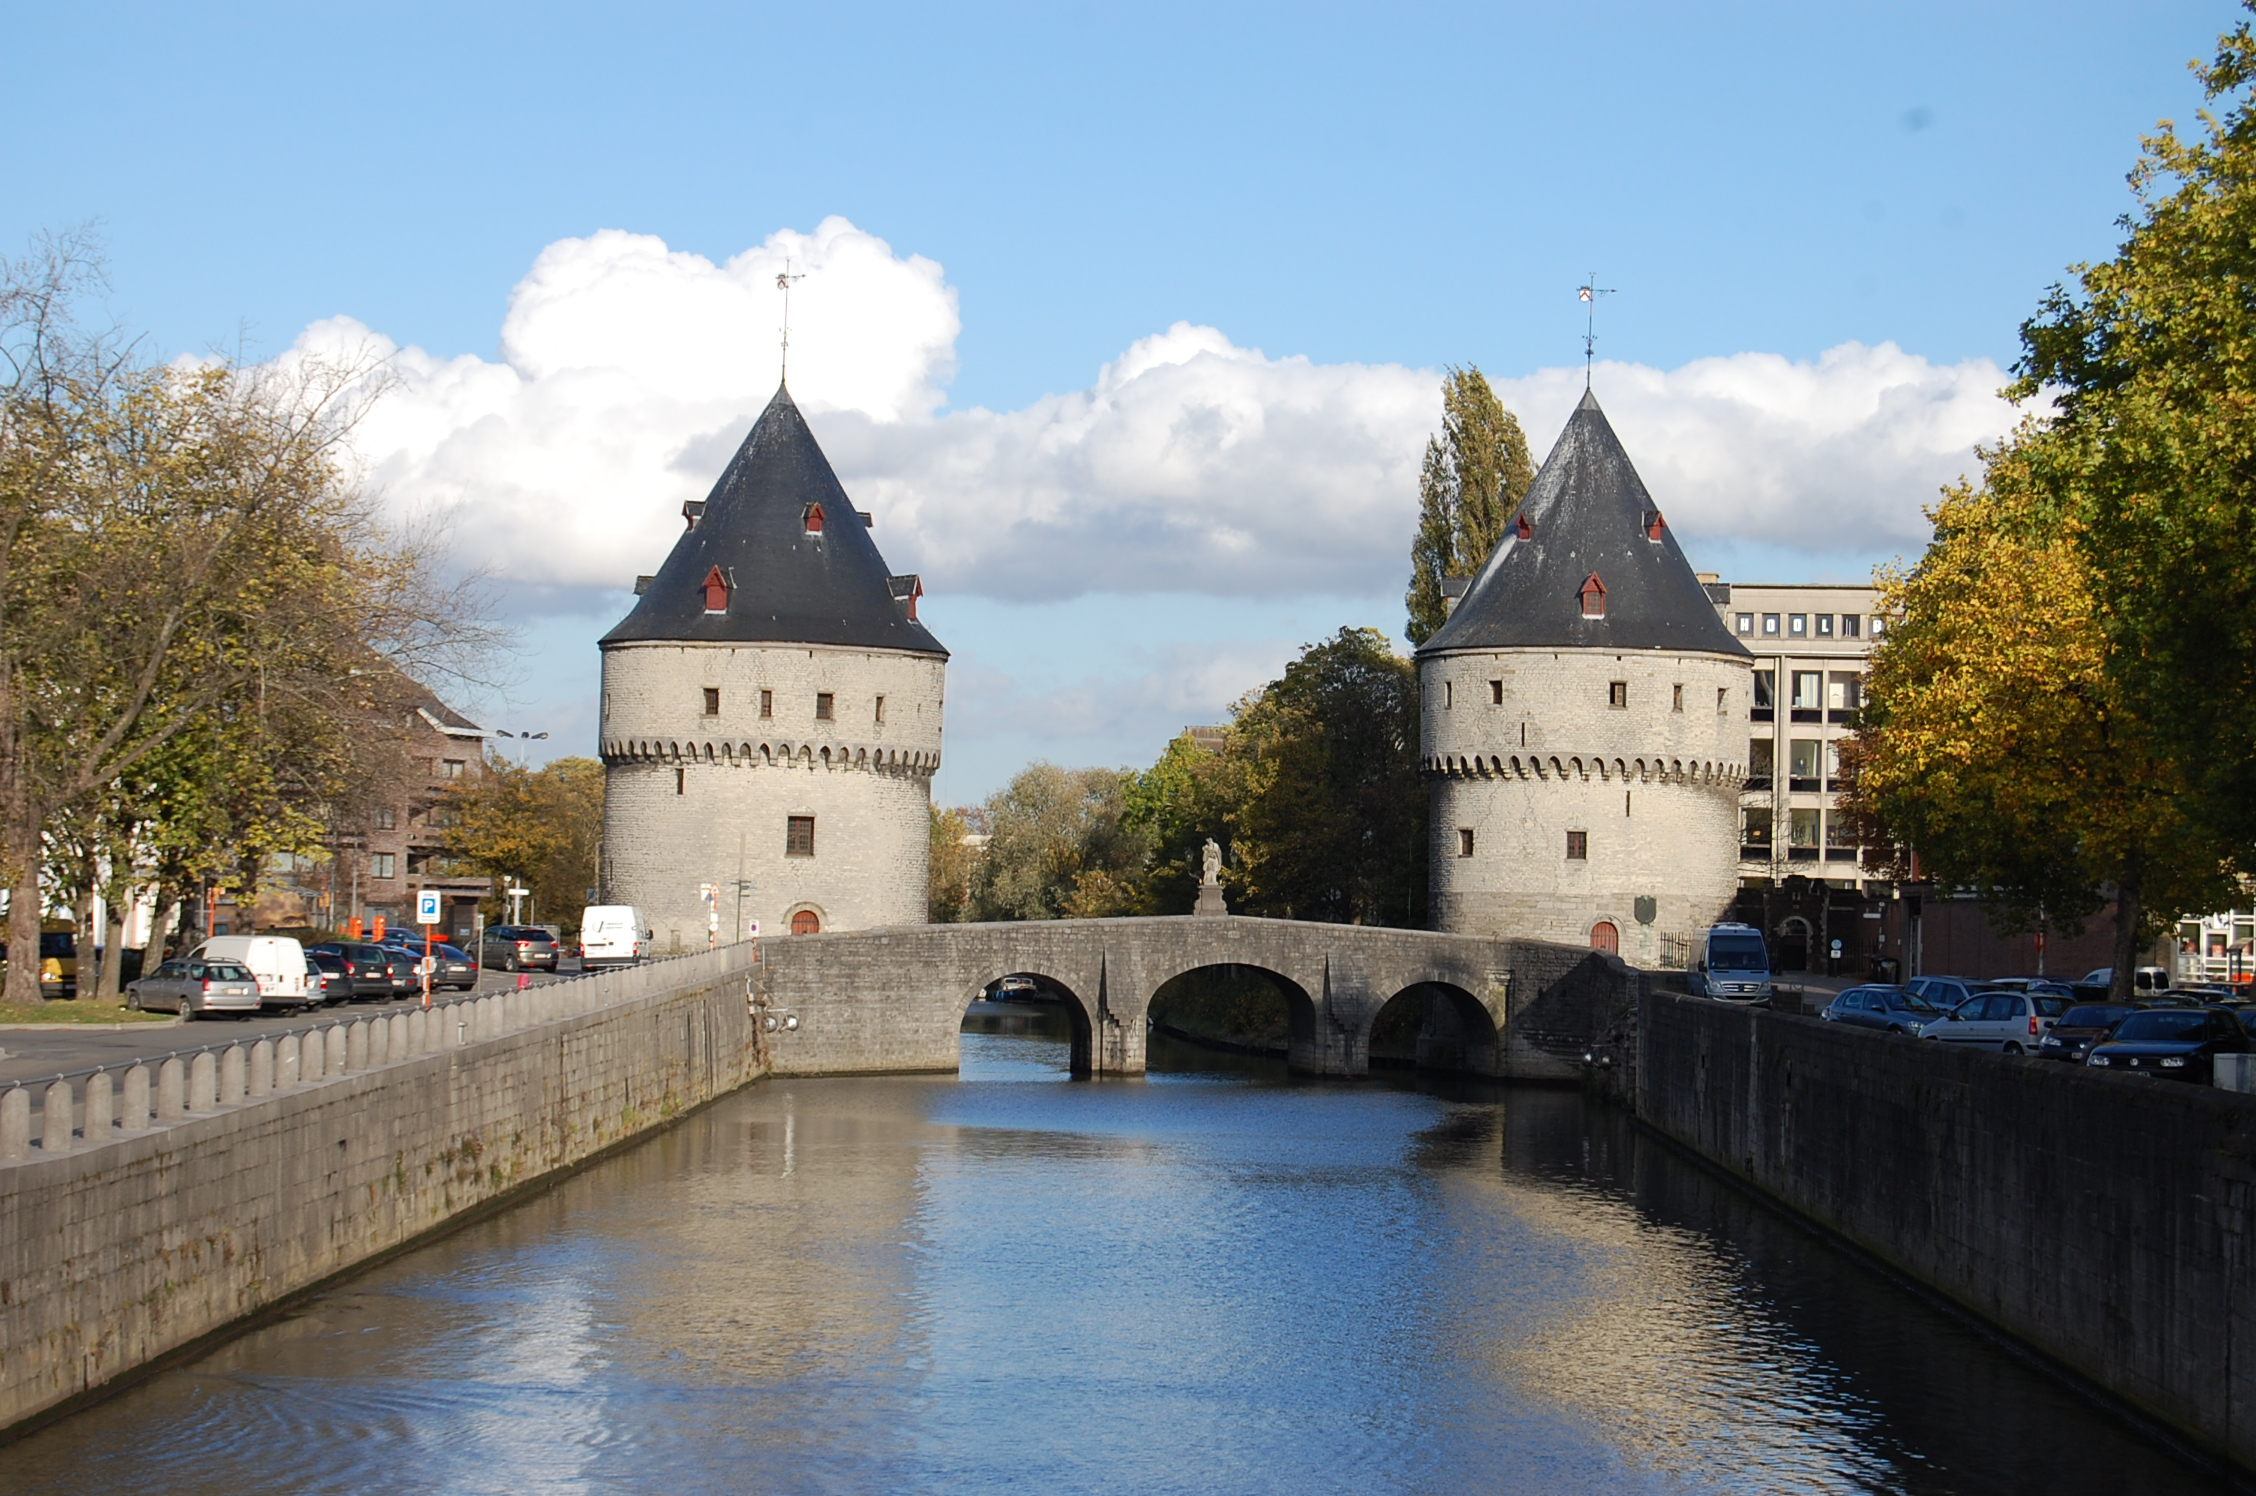 The towers (Broeltorens) are the city's most important icon, remaining the medieval city walls. The two towers are linked by a bridge across the Leie.